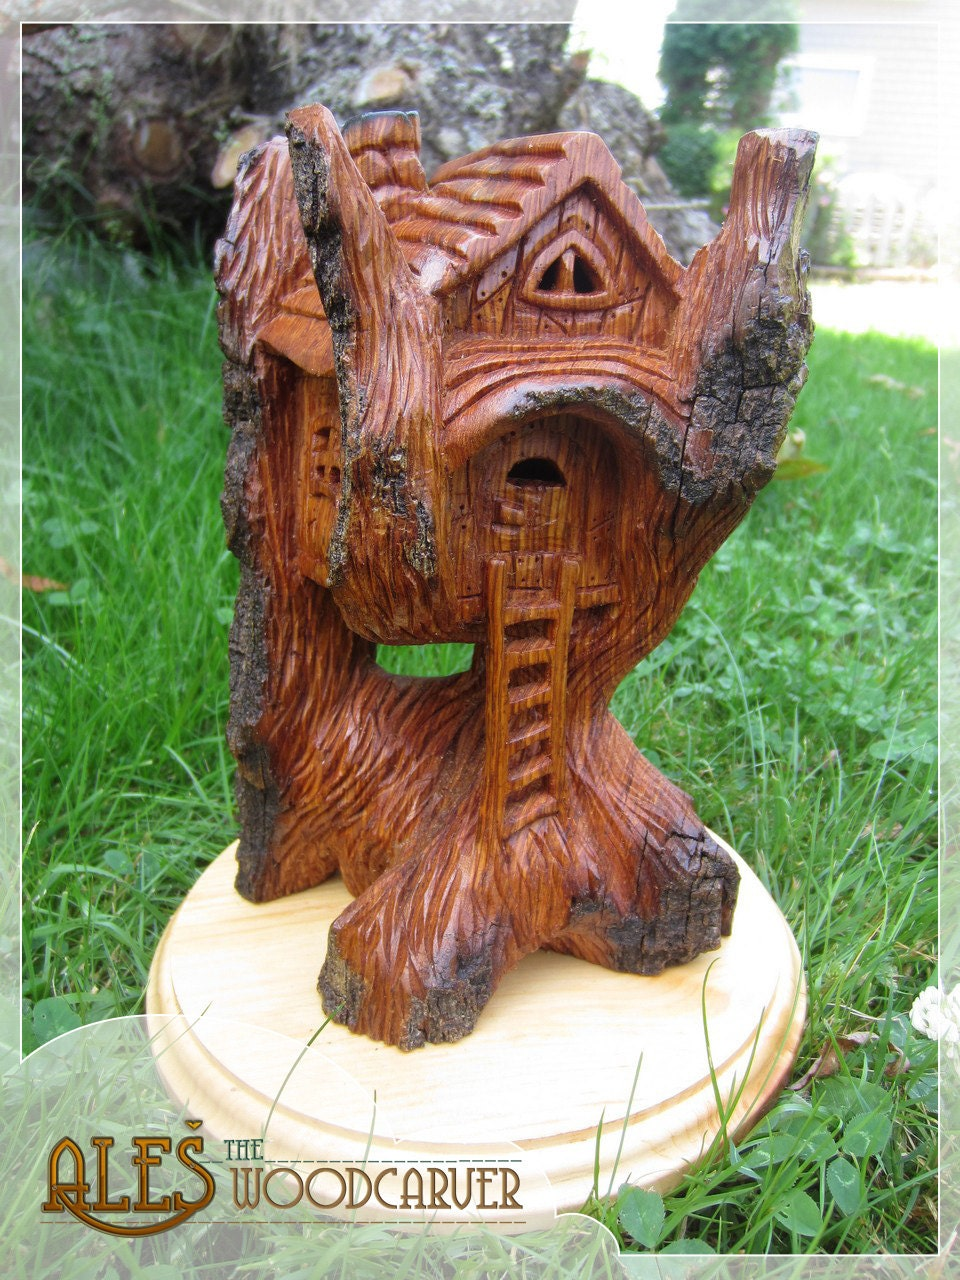 Whimsical house cottonwood bark carving - House in a Tree - beautiful decoration, one of a kind - Alesthewoodcarver